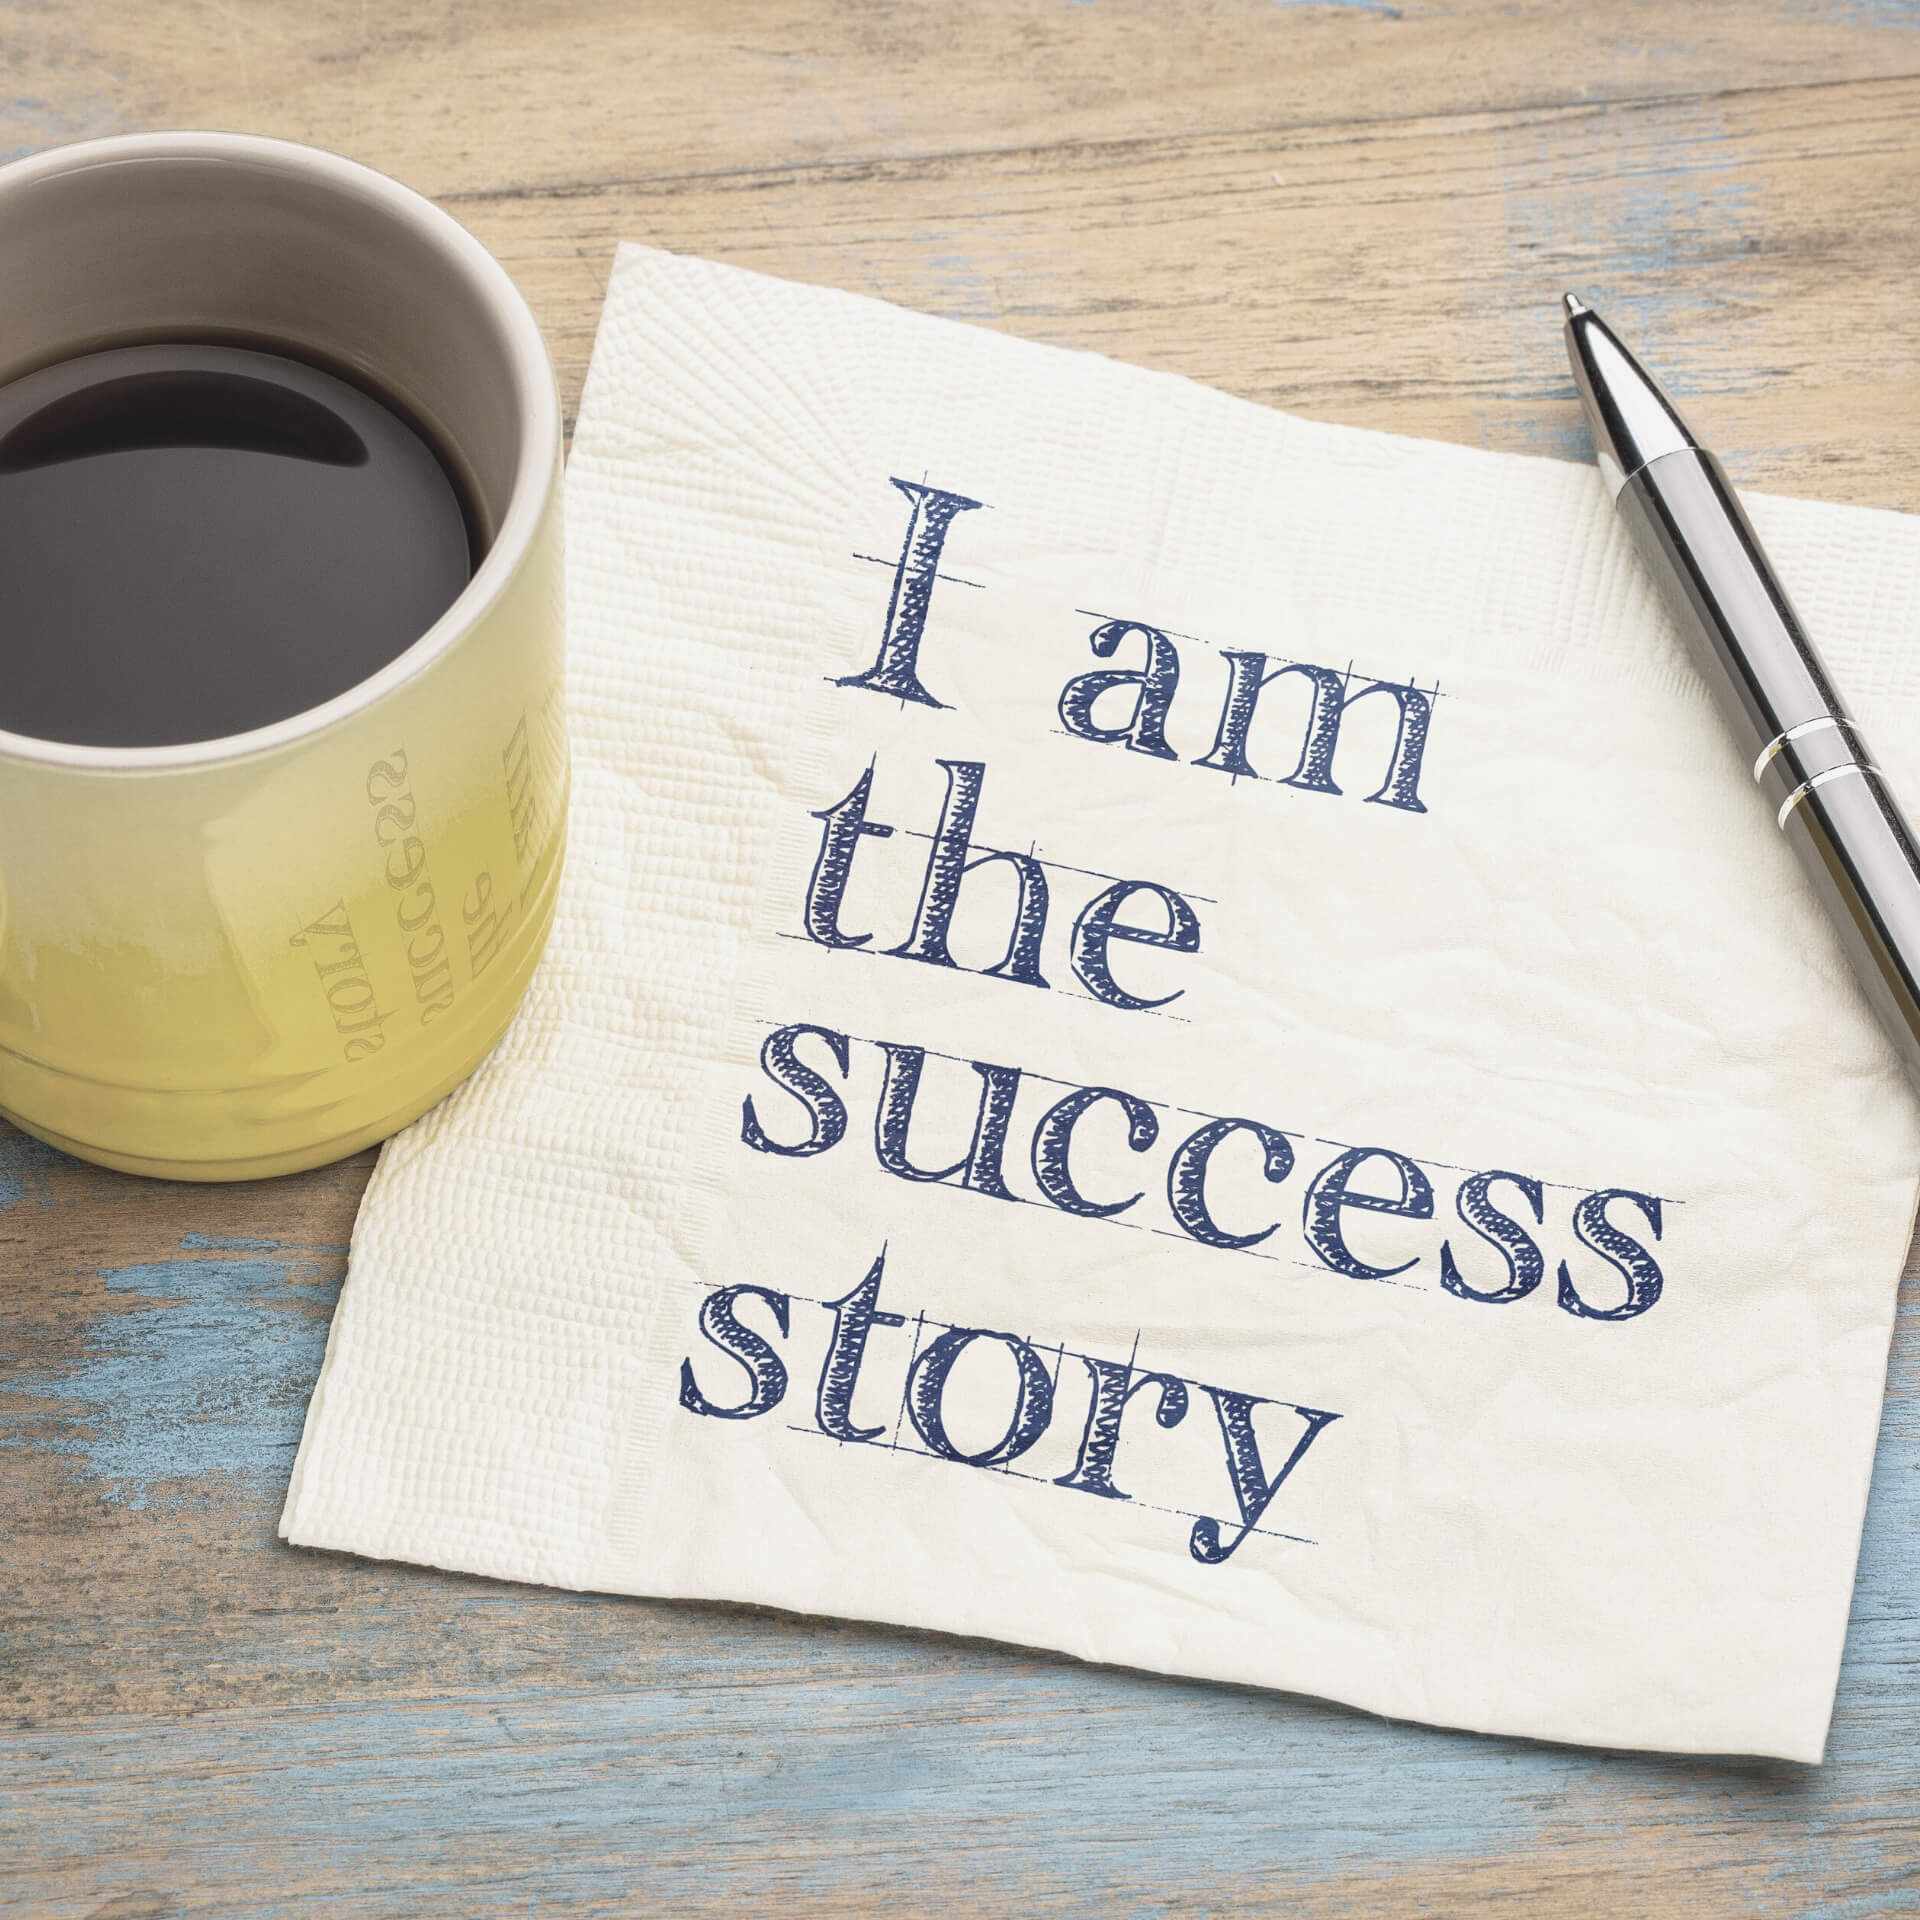 "Digital Marketing Examples: Napkin with the text ""I am the success story"" next to a cup of coffee."